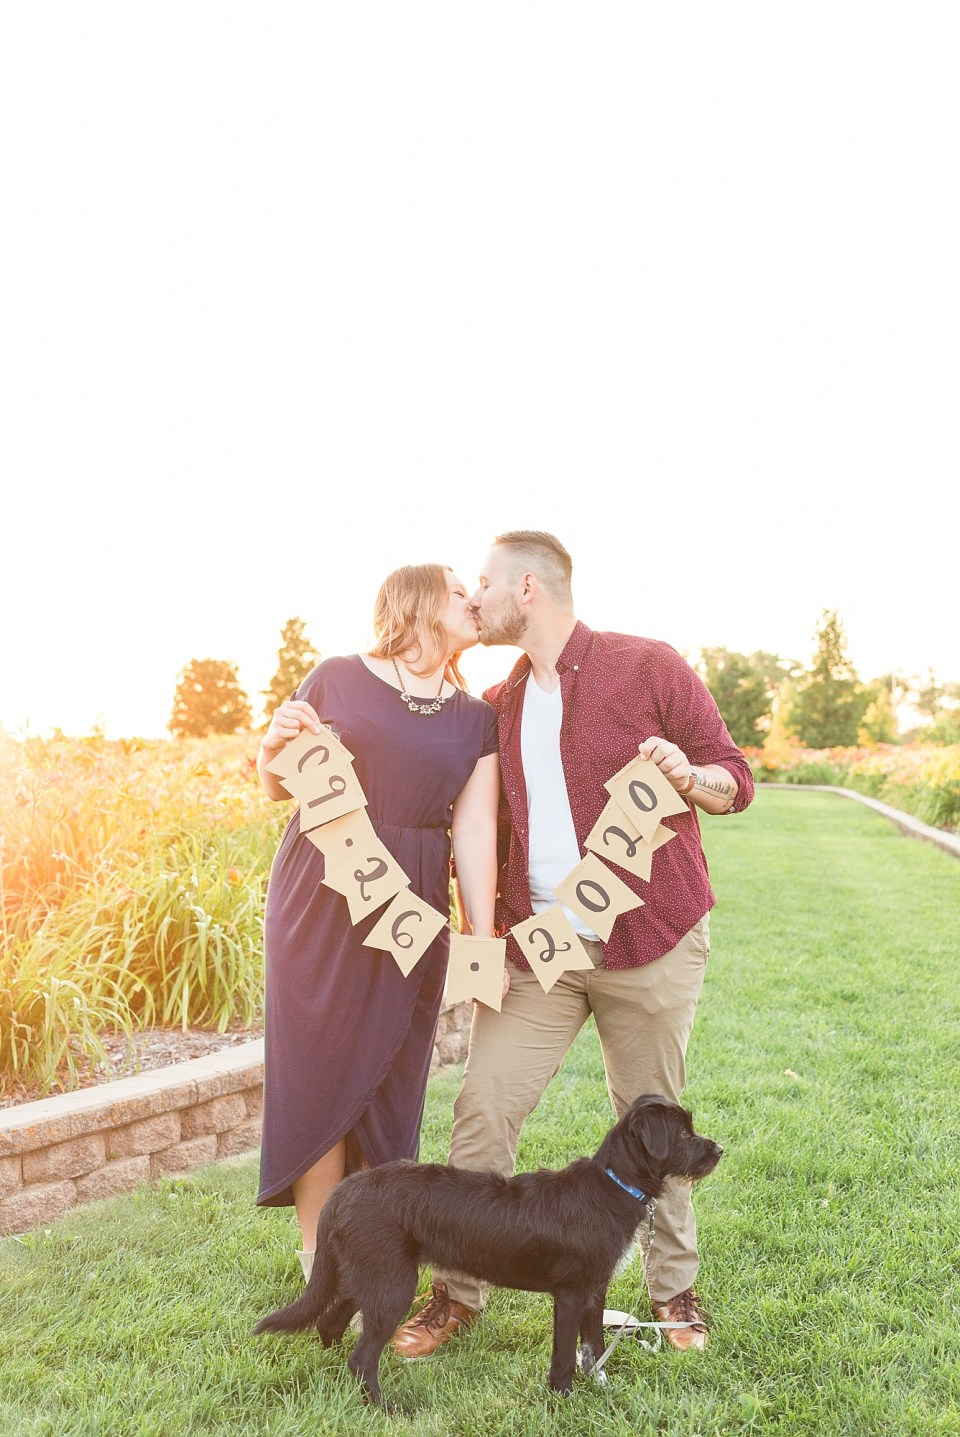 A couple kisses and holds a banner with their engagement date printed